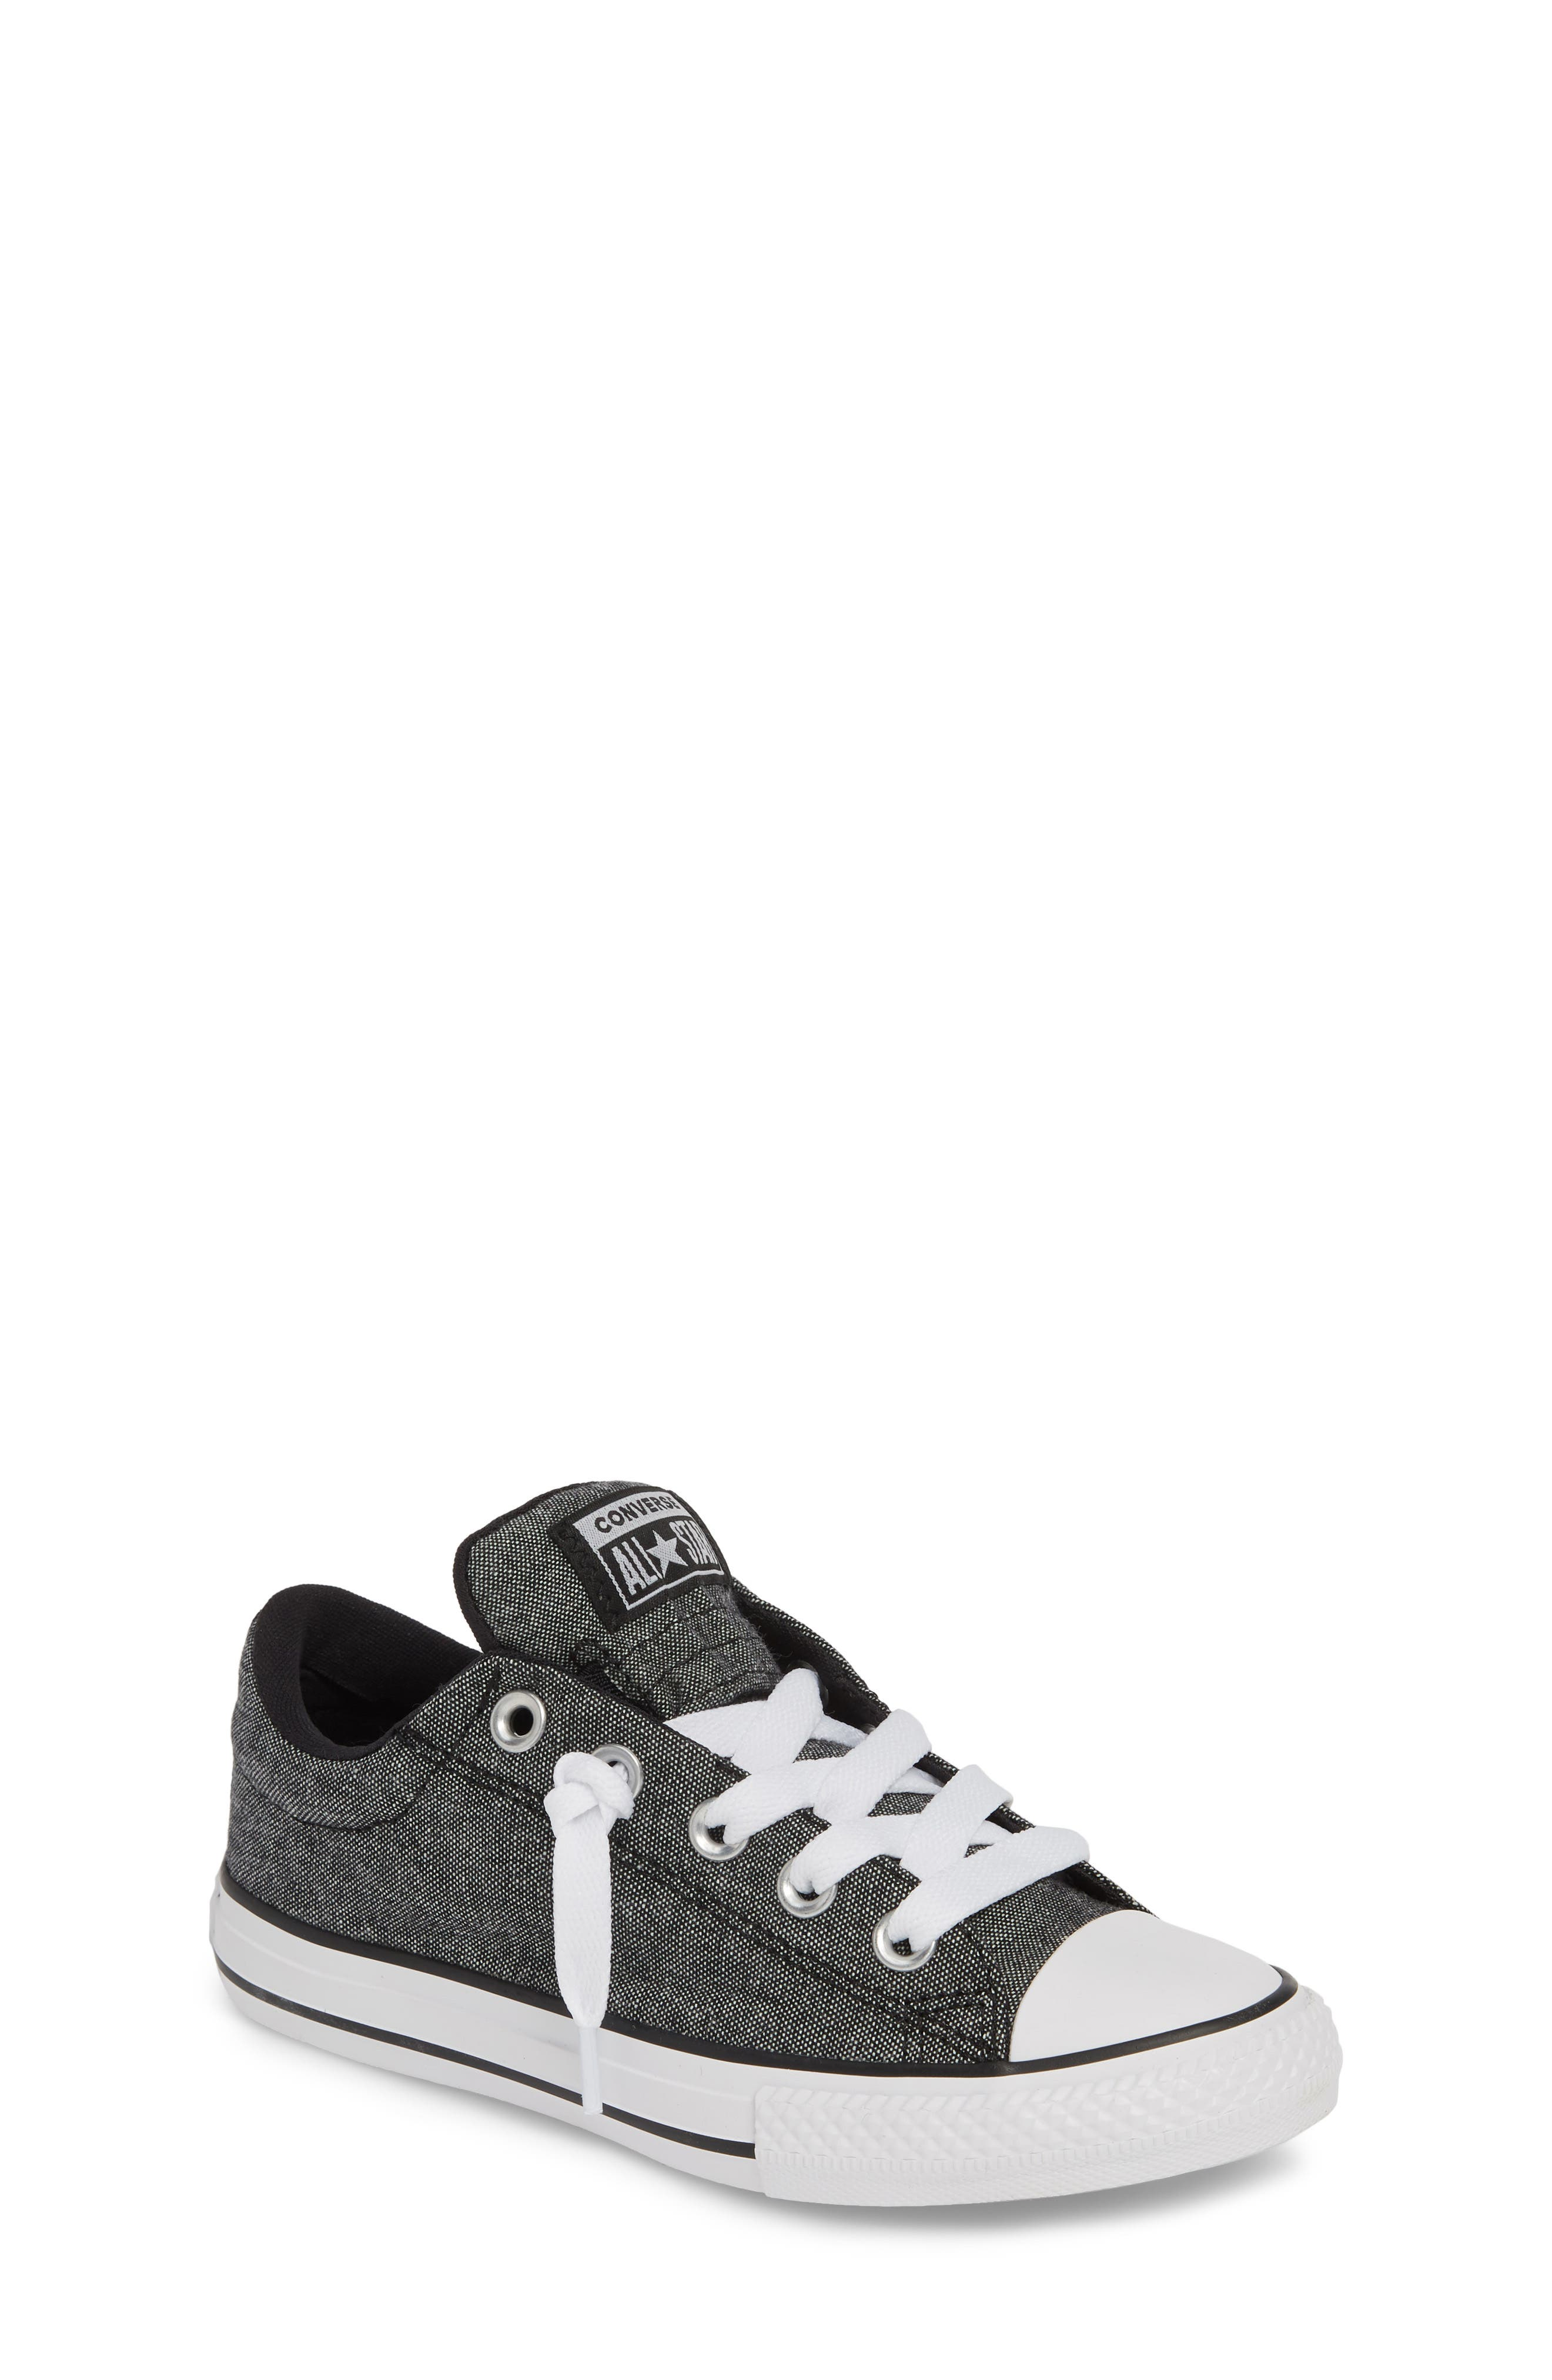 CONVERSE Chuck Taylor<sup>®</sup> All Star<sup>®</sup> Street Sneaker, Main, color, BLACK/ BLACK/ WHITE